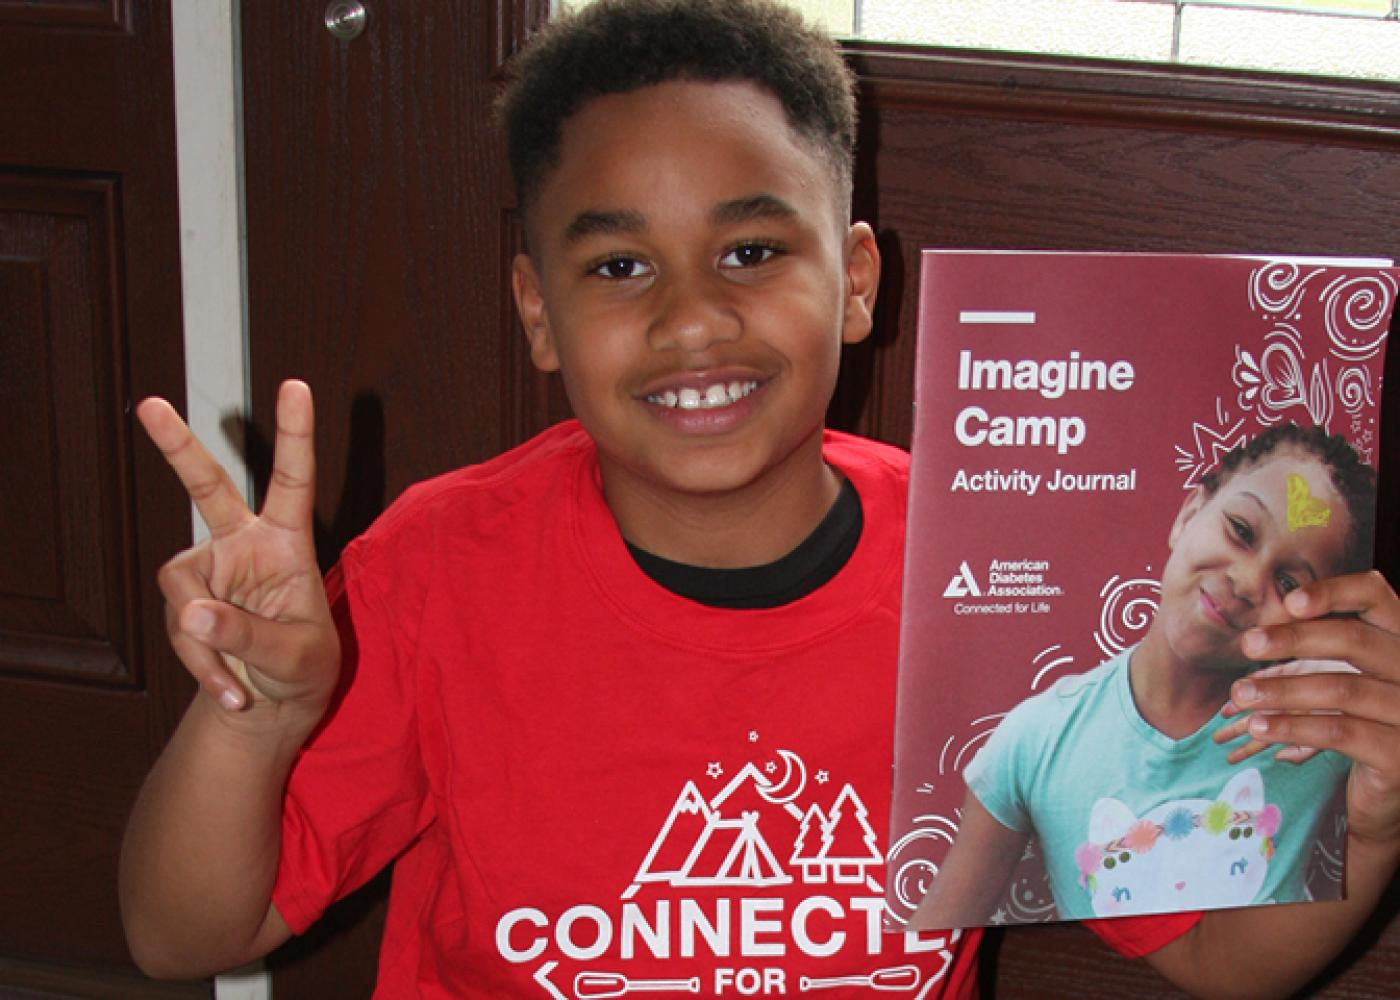 Happy African American kid flashing peace sign and holding up activity journal